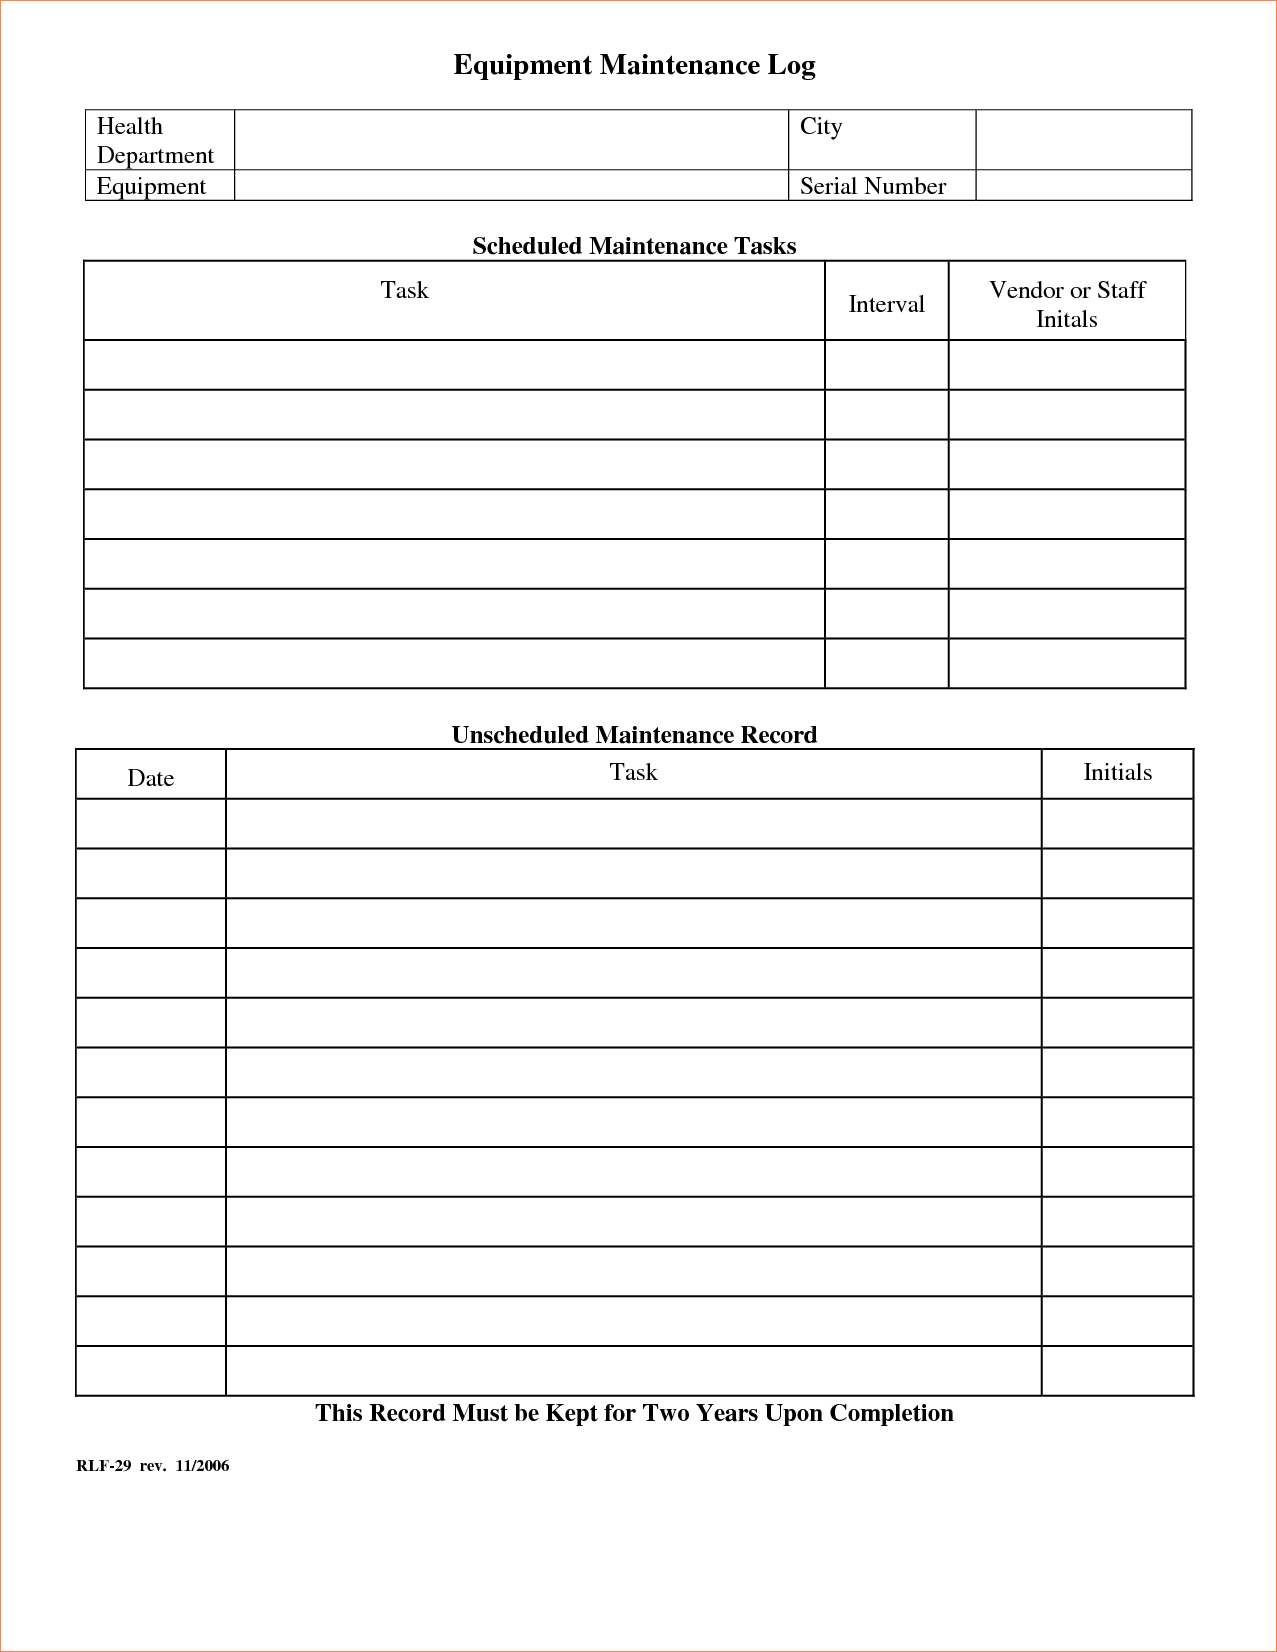 Equipment Maintenance Schedule Spreadsheet Regarding Equipment Maintenance Log Template  Charlotte Clergy Coalition